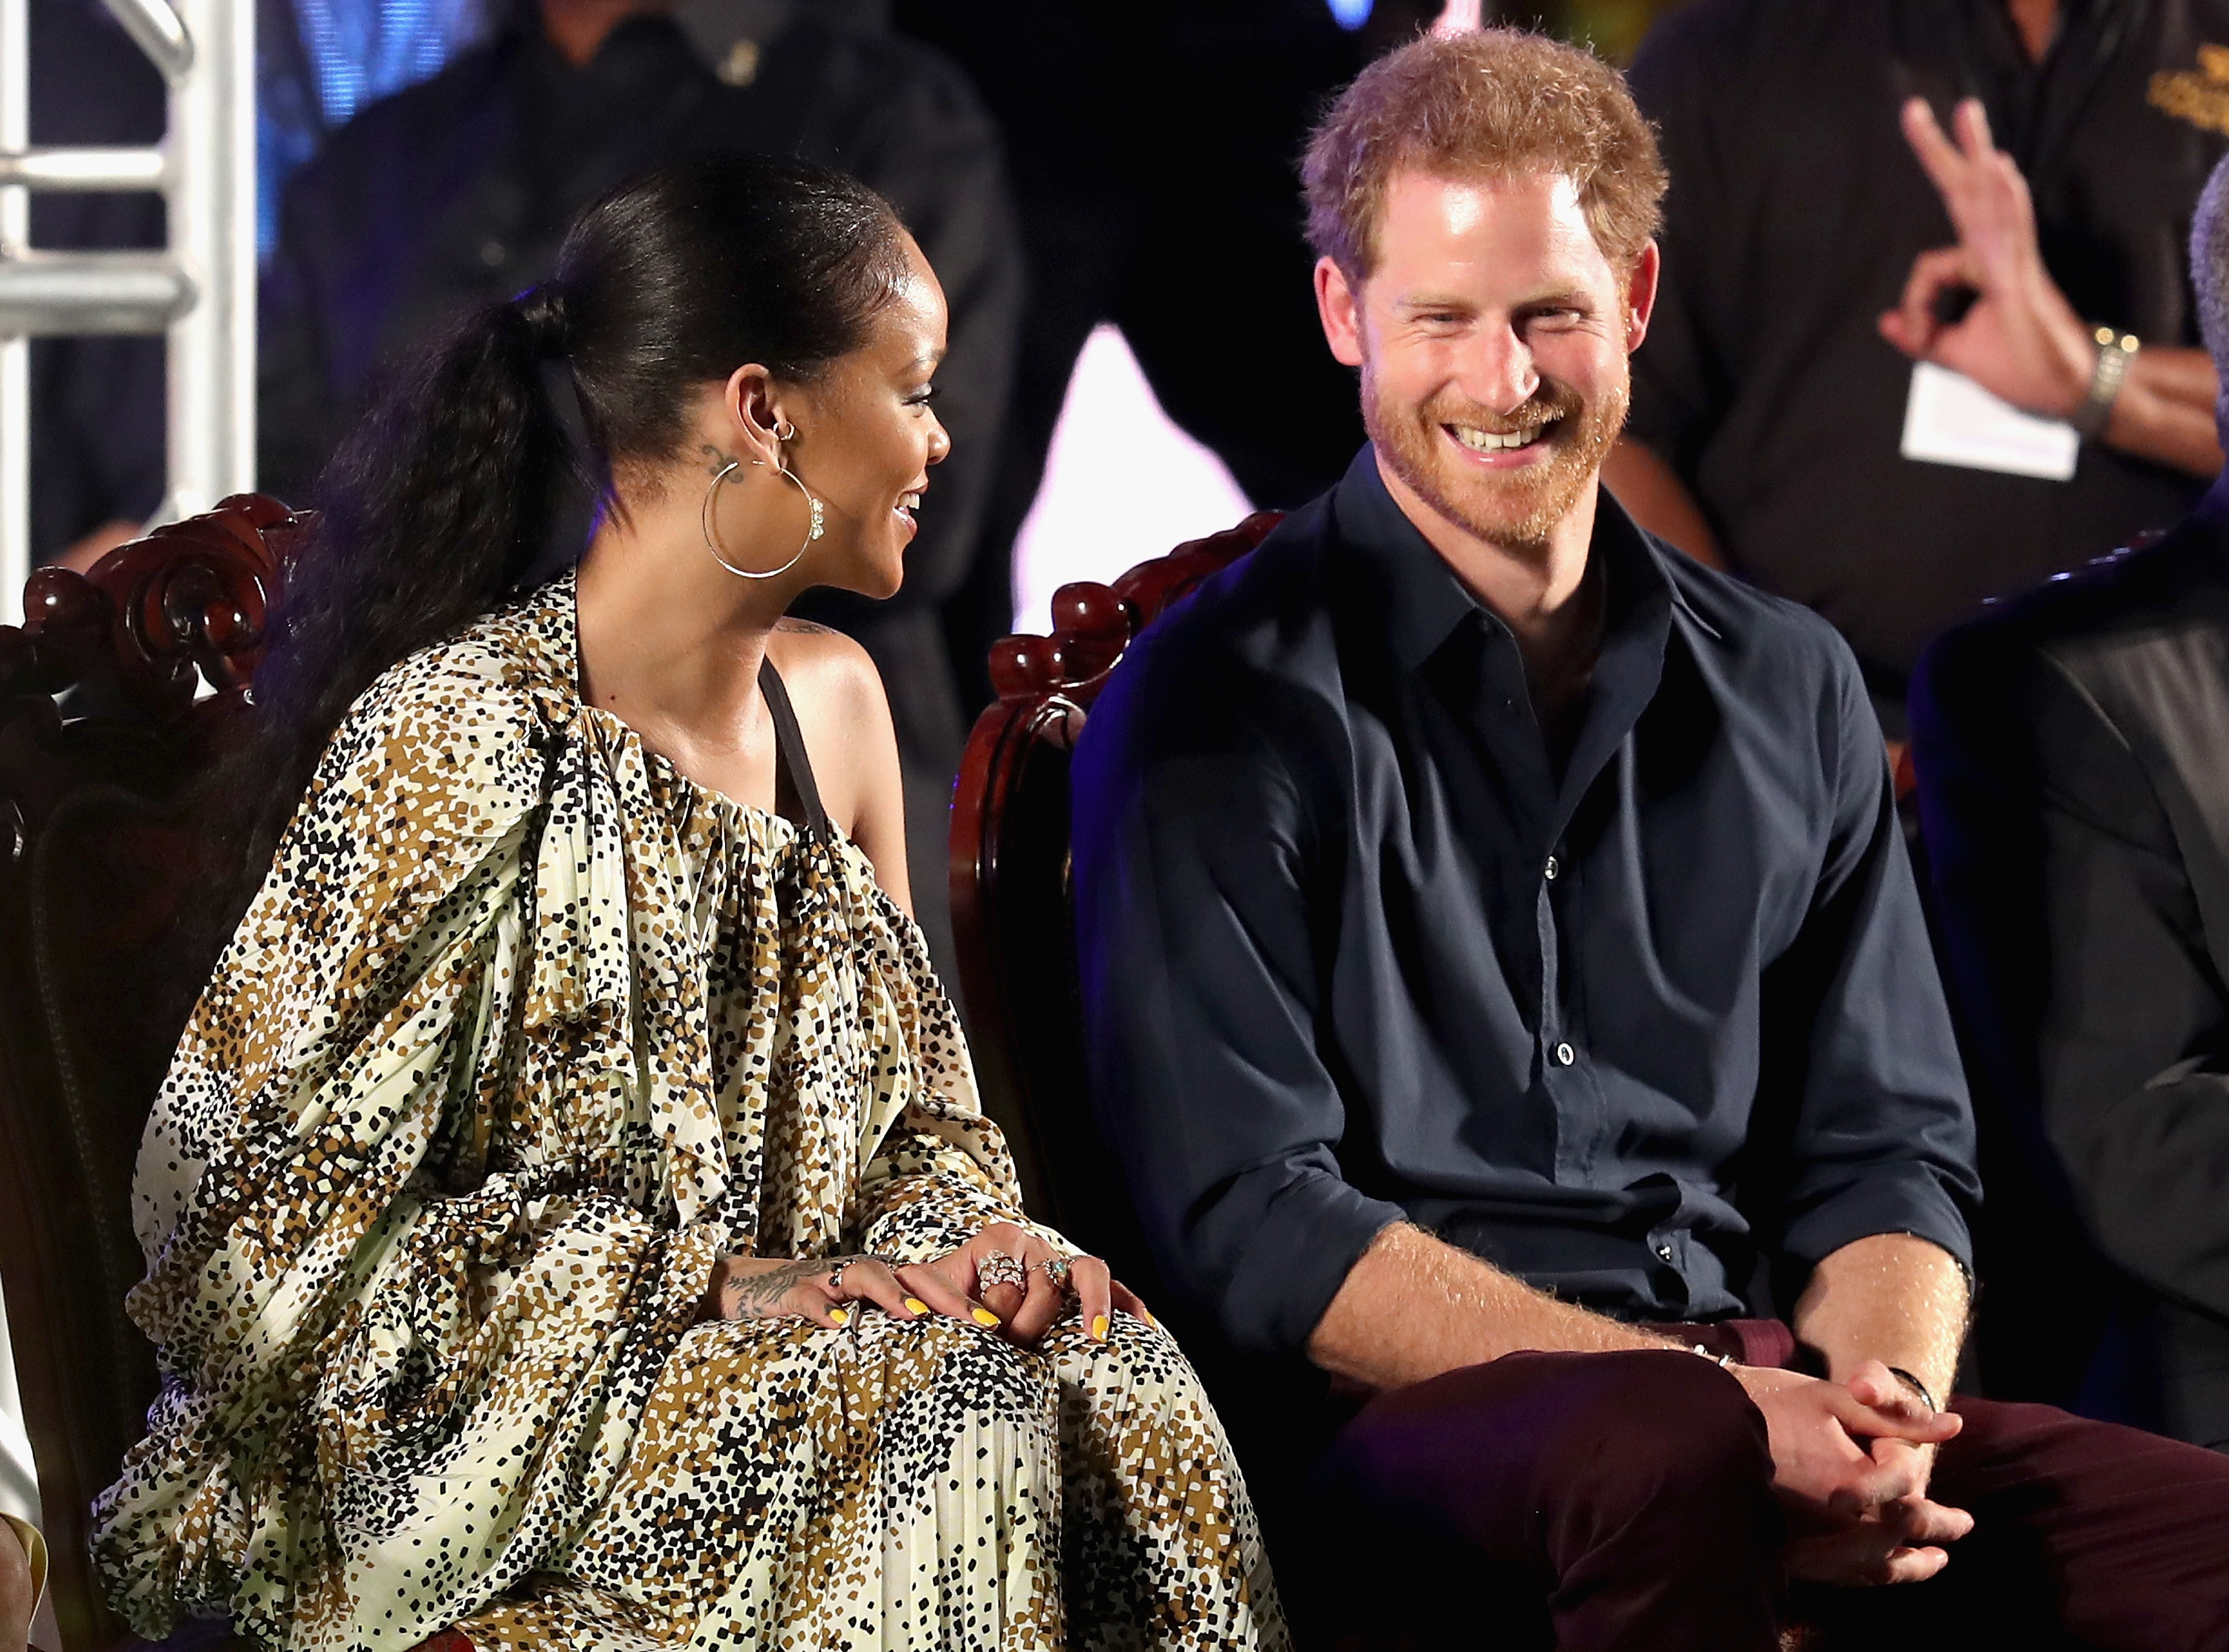 Prince Harry and singer Rihanna attend a concert at the Kensington Oval Cricket Ground on day 10 of an official visit to the Caribbean on November 30, 2016 in  Bridgetown, Barbados.